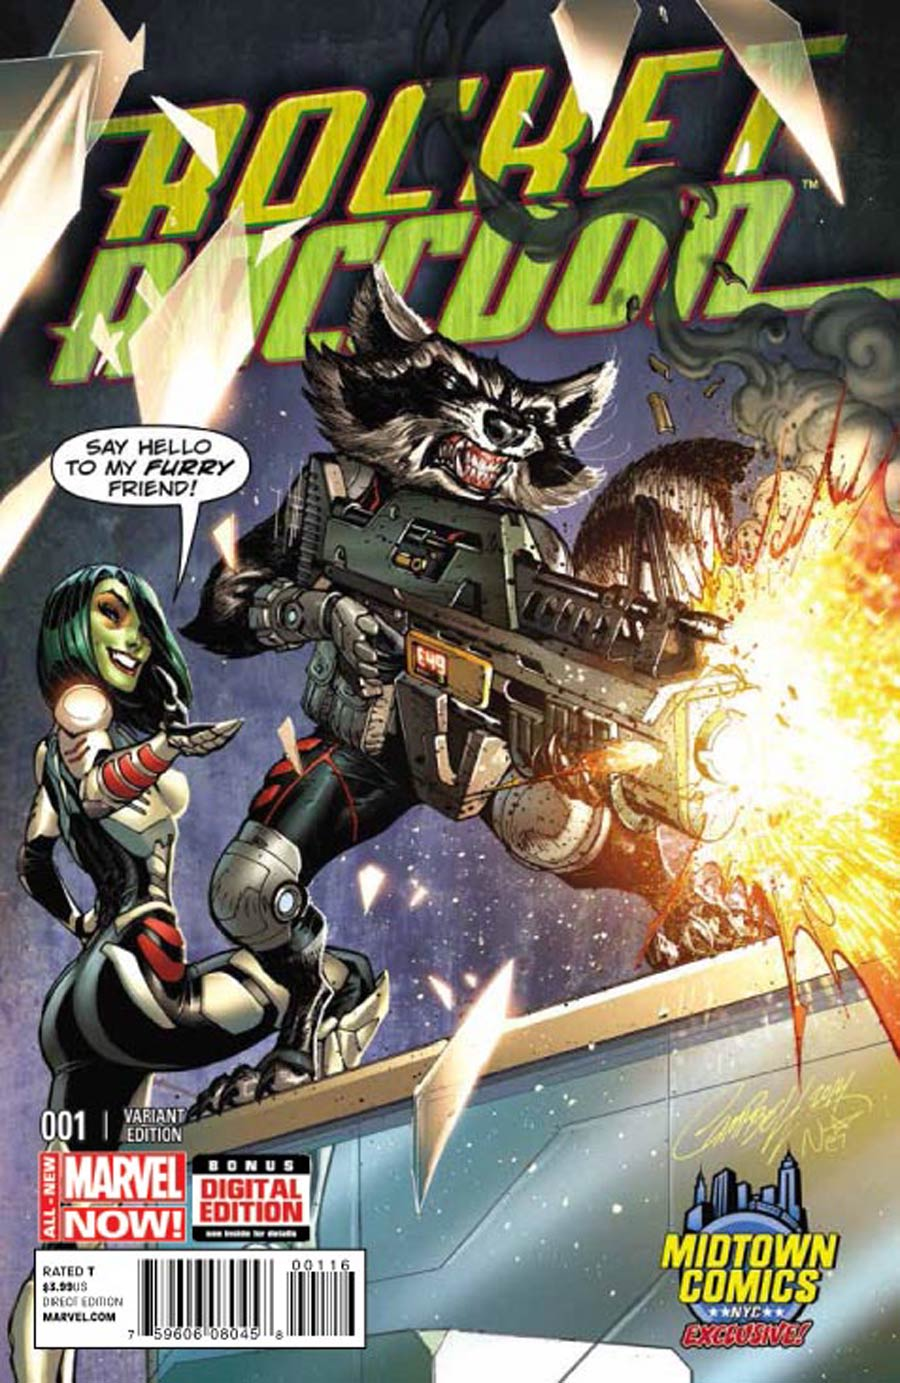 Rocket Raccoon Vol 2 #1 Cover B Midtown Exclusive J Scott Campbell Color Variant Cover